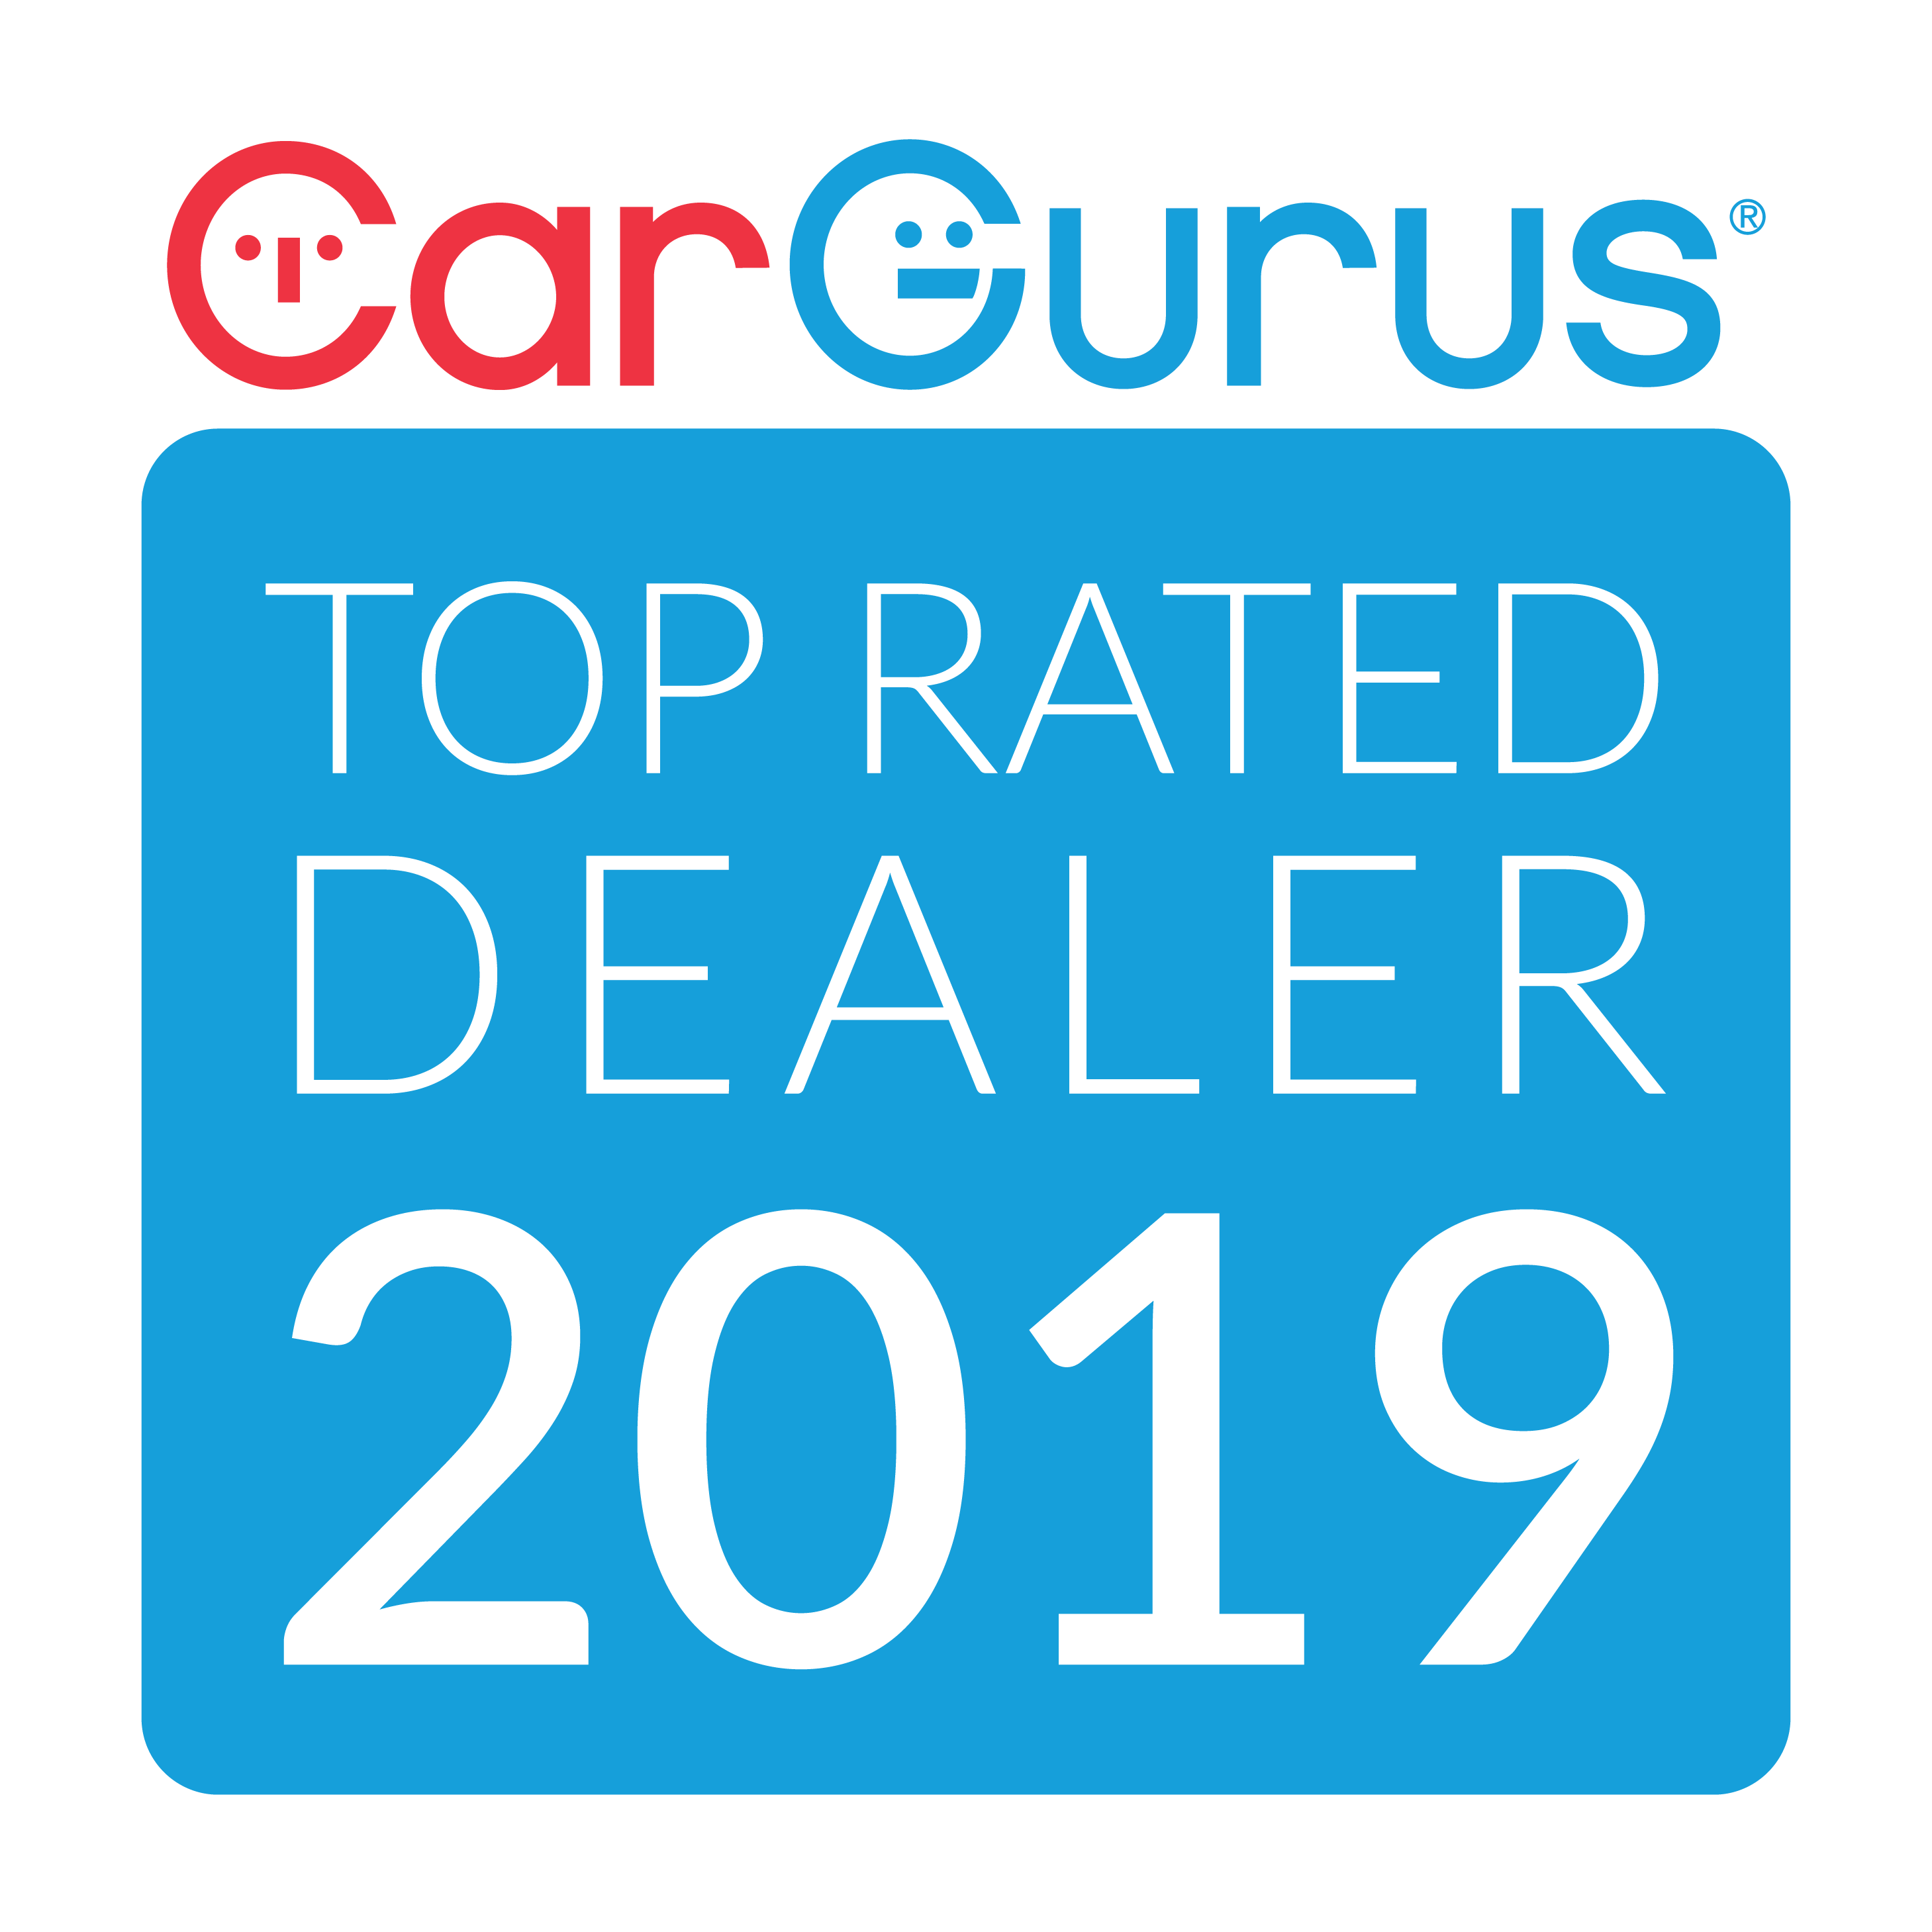 Car Guru Top Rated Dealer 2019